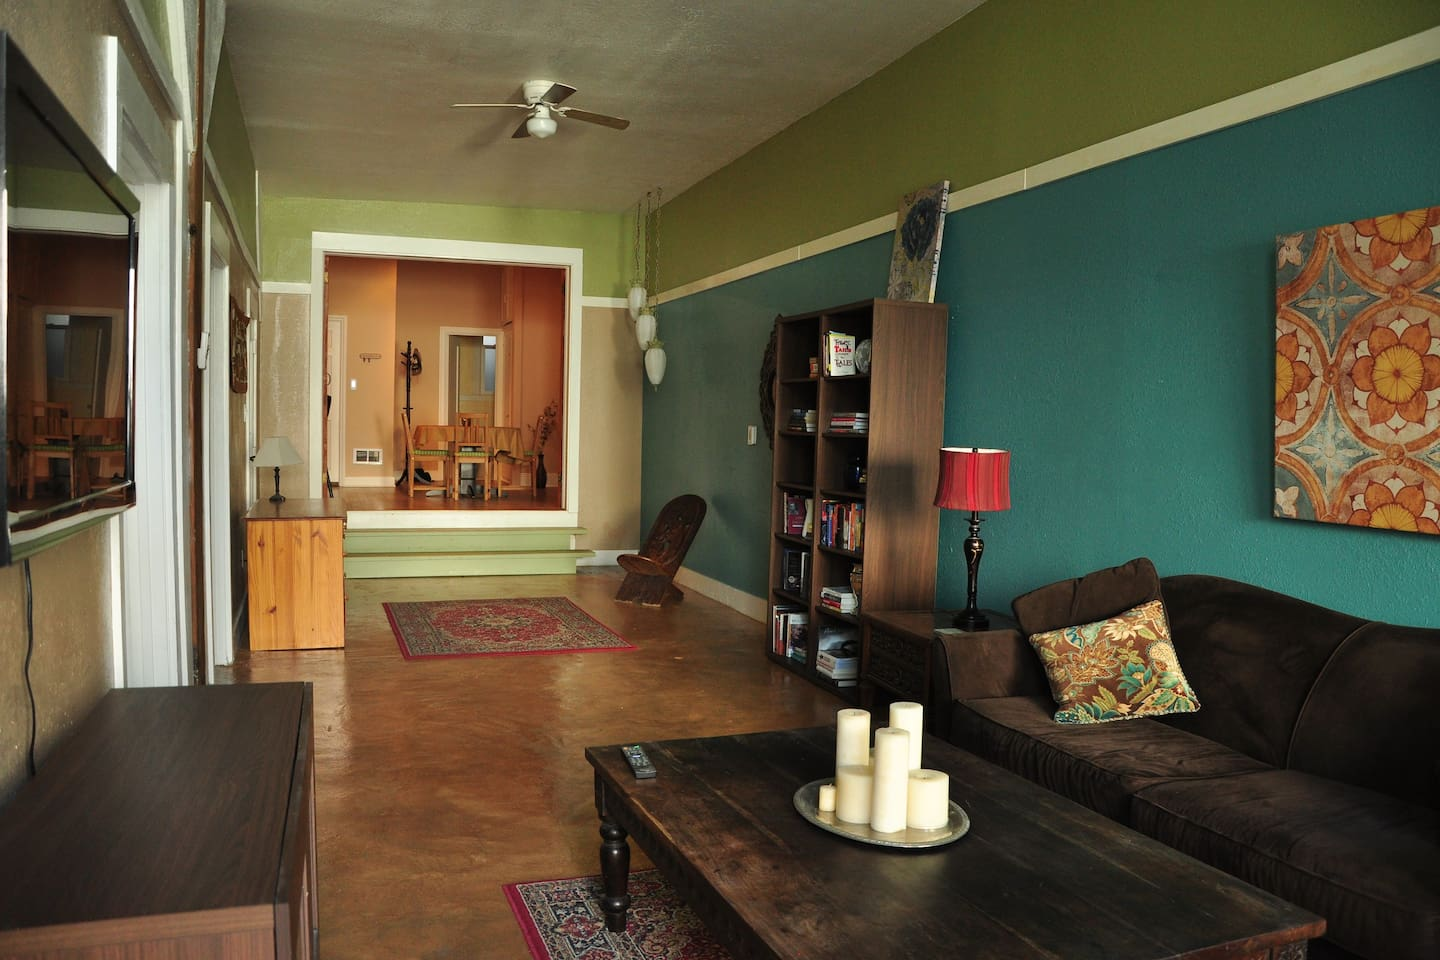 SoMa Garden Apartment - Apartments for Rent in San Francisco ...